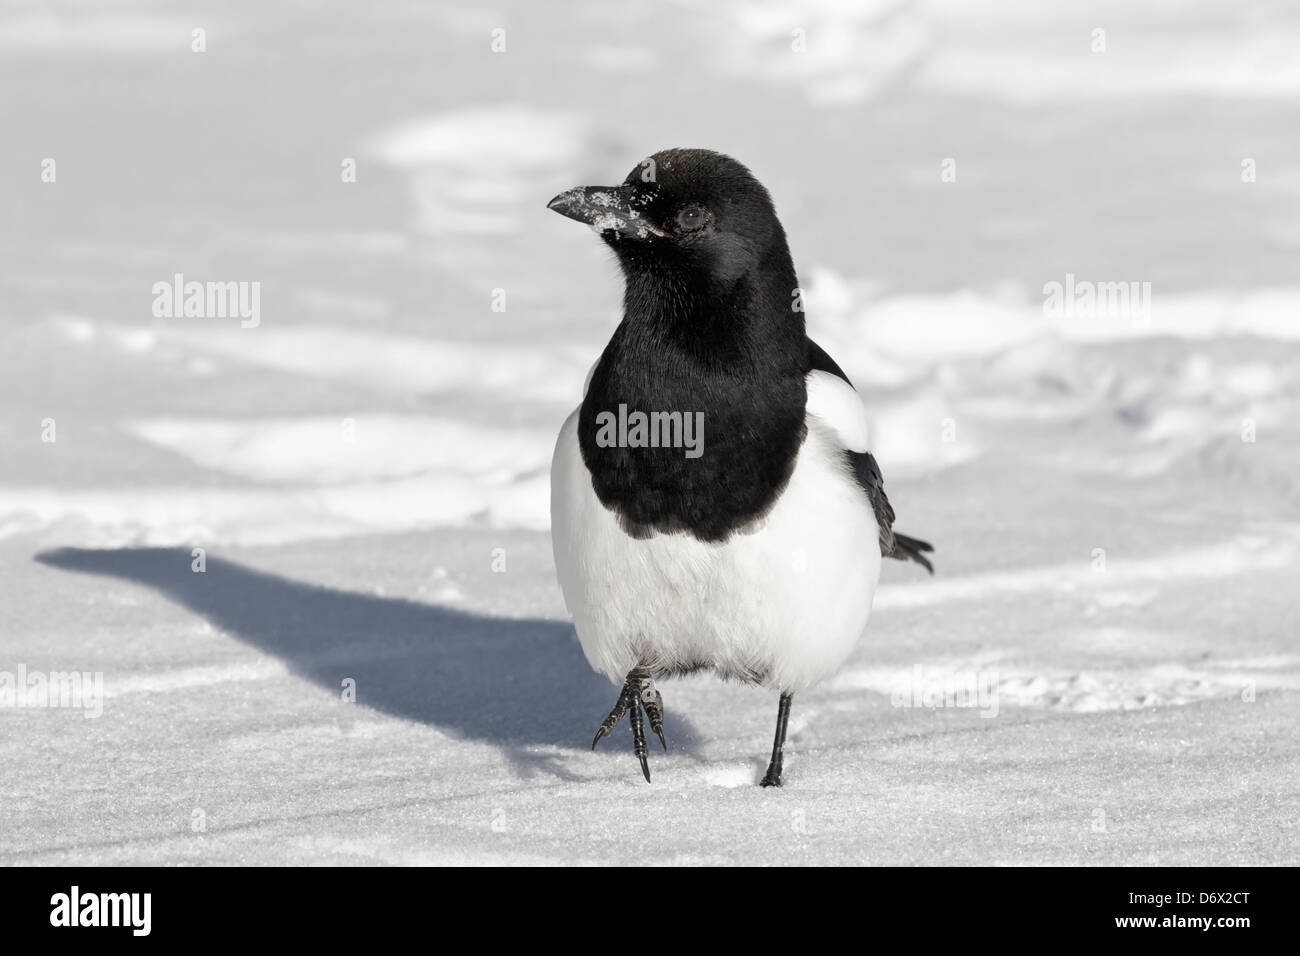 Magpie in the snow - Stock Image